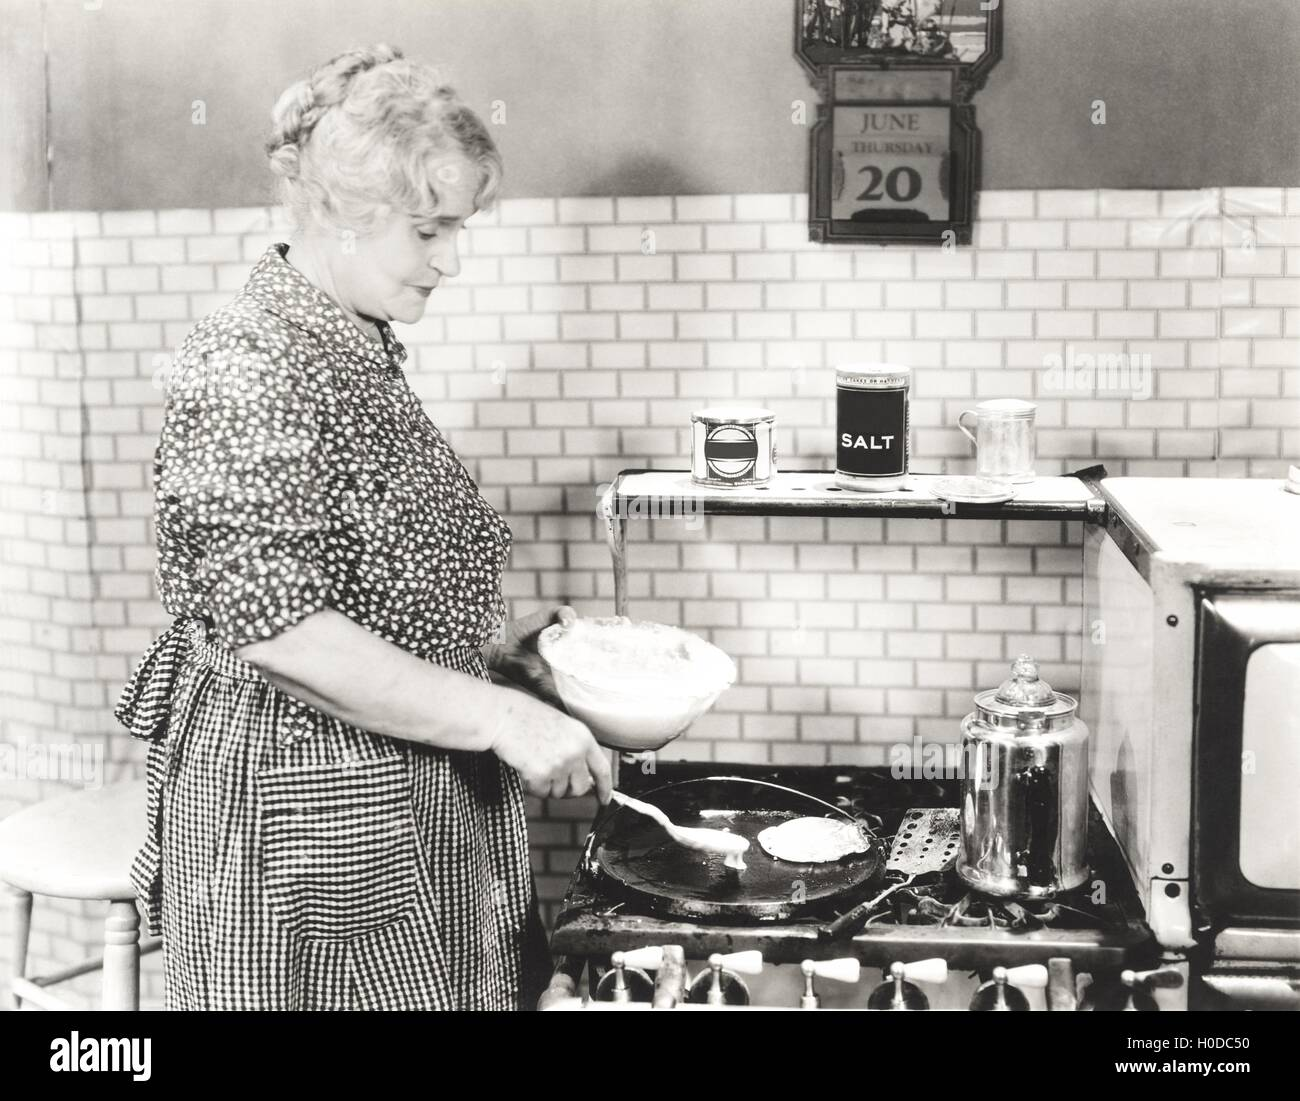 Making pancakes for breakfast - Stock Image